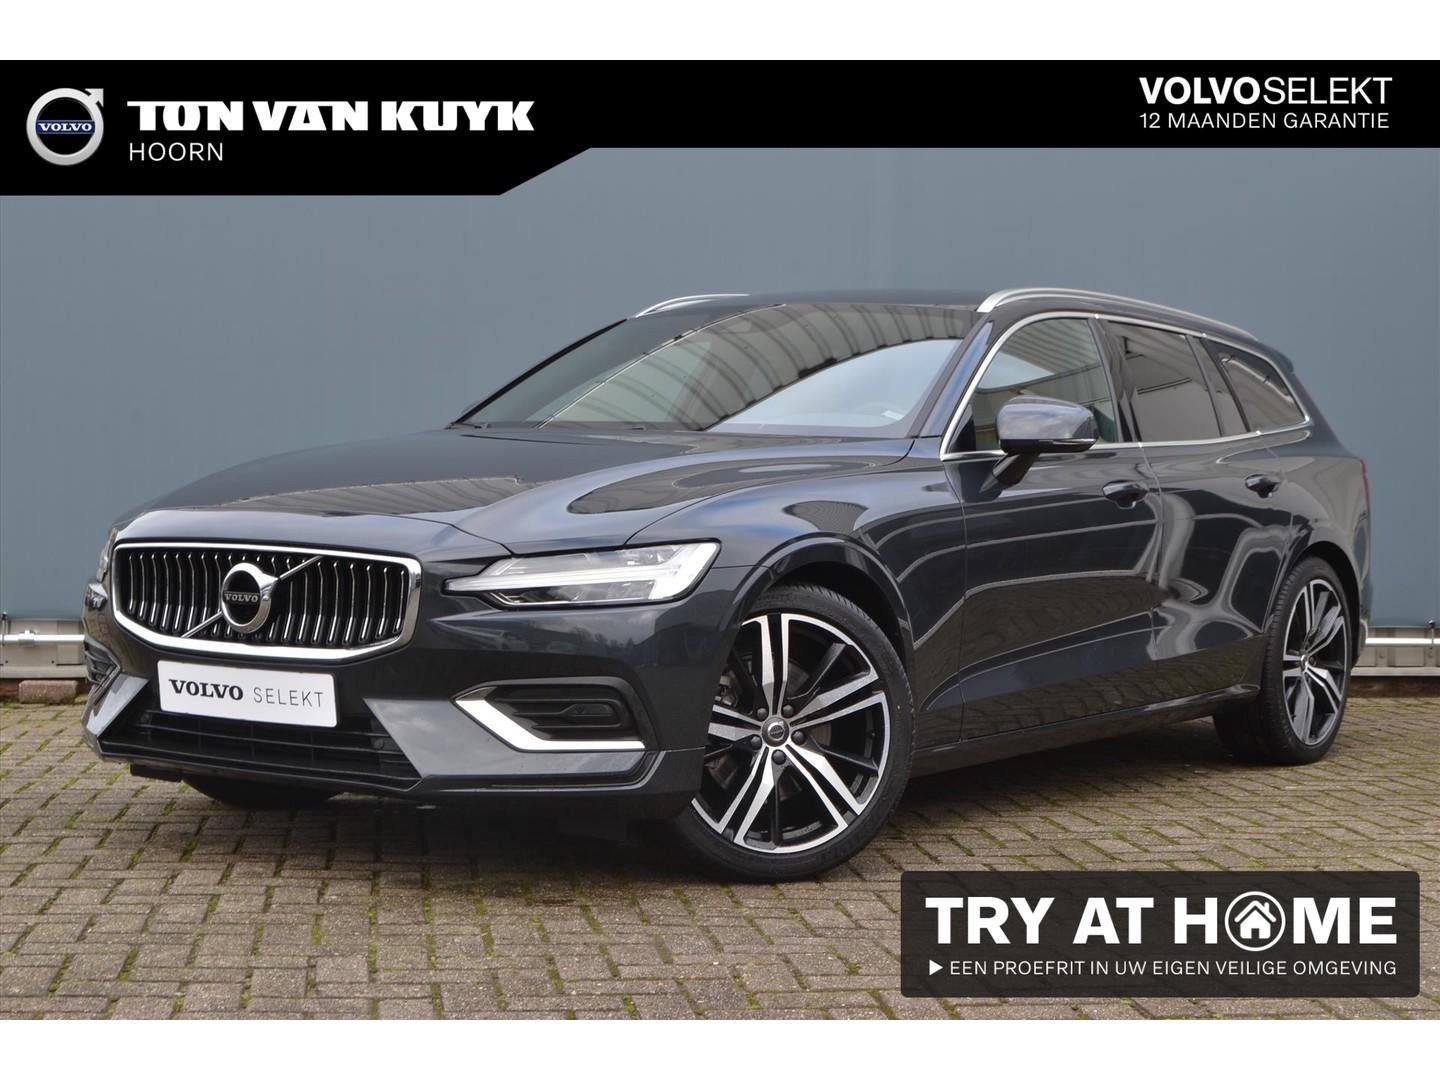 Volvo V60 T4 190pk automaat inscription / intellisafe line / park assist line